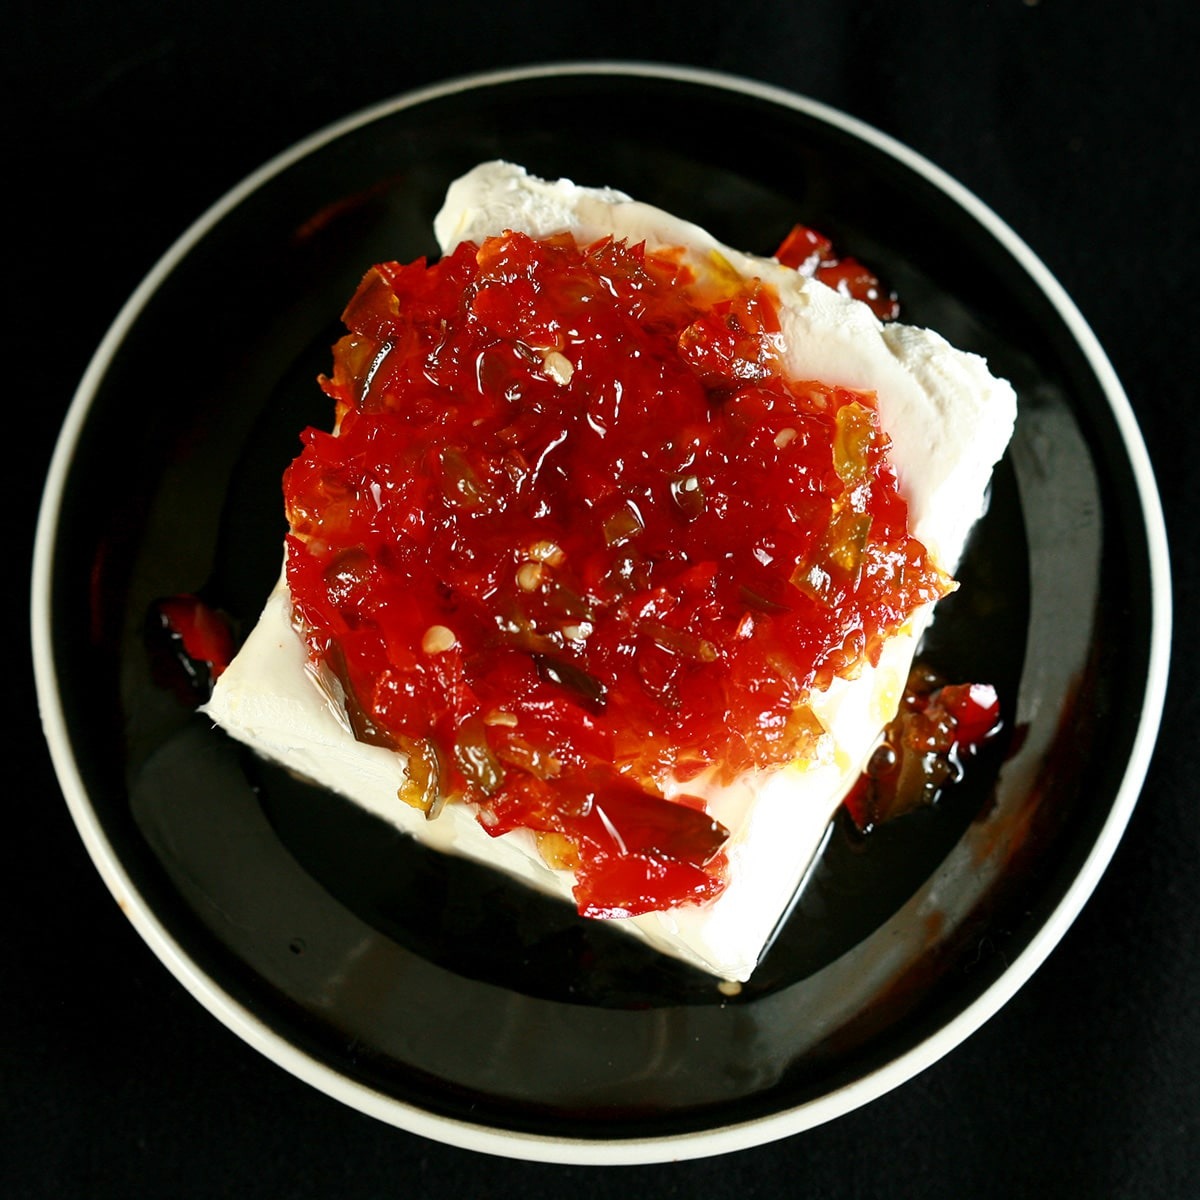 A mound of pepper jelly on a chunk of cream cheese on a small black plate.